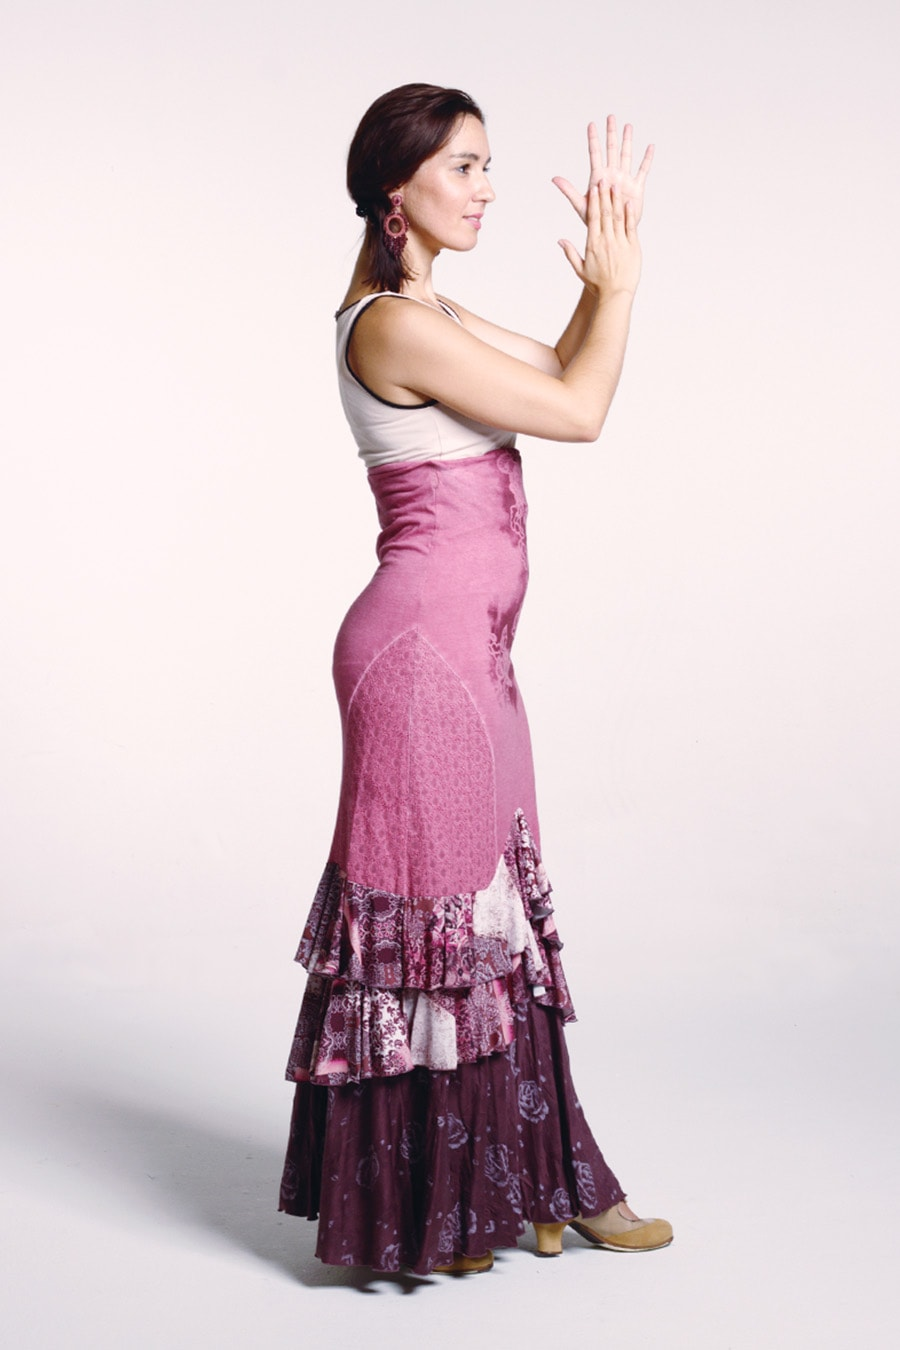 Product Adele Skirt from the eco conscious flamenco fashion collection Love the Earth 2020.